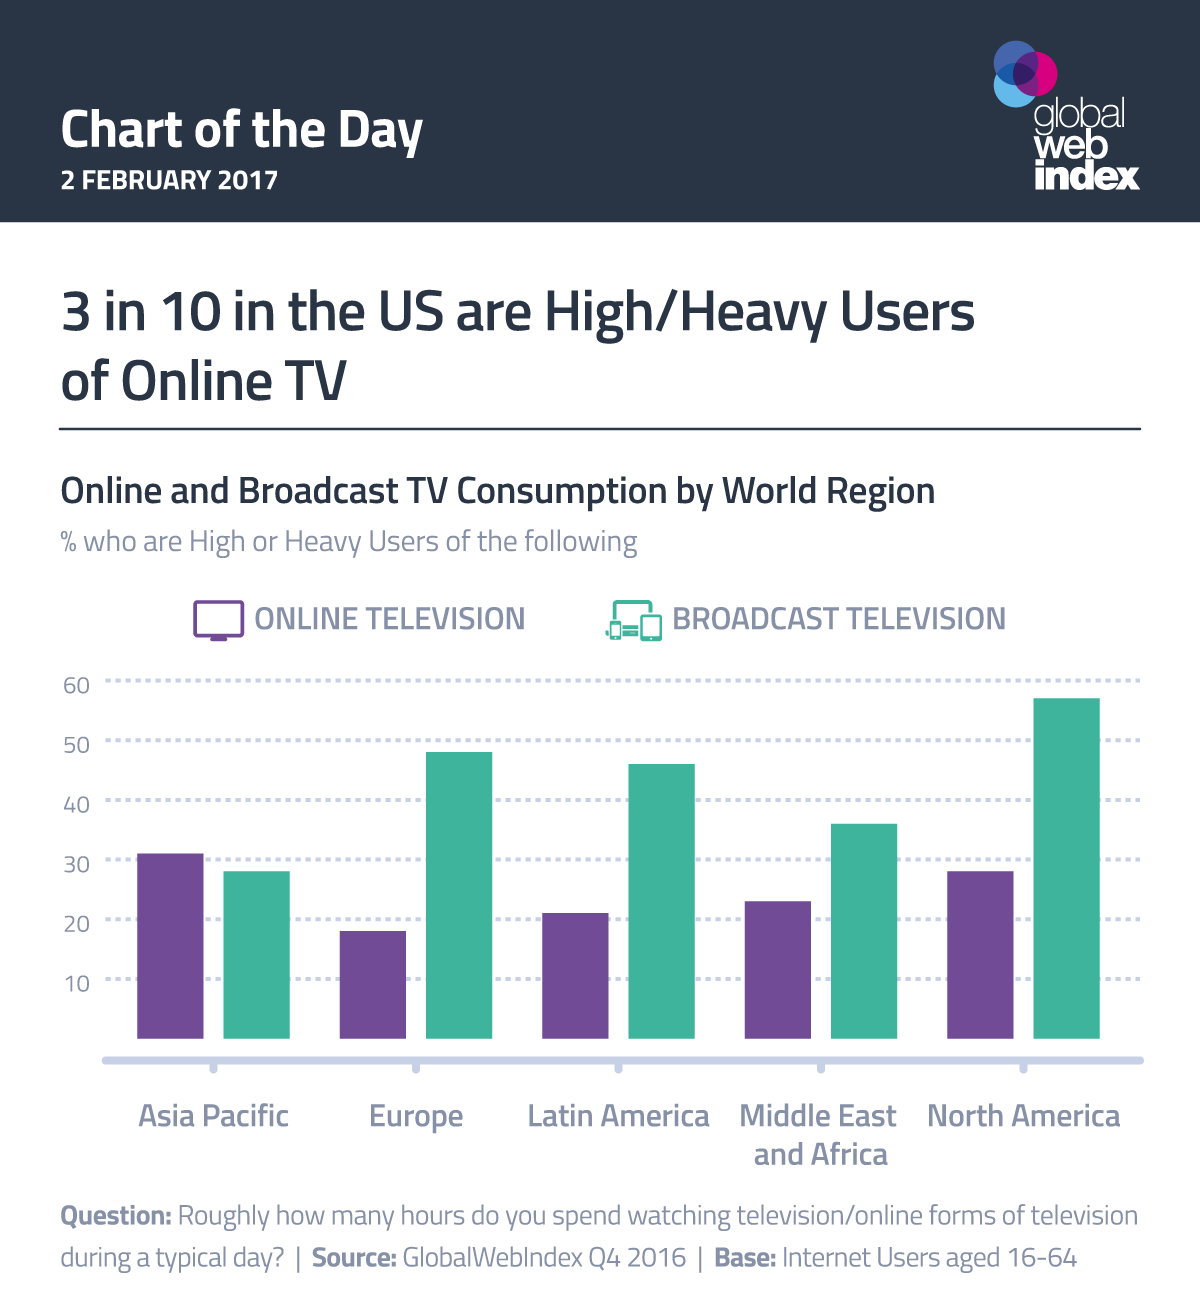 3 in 10 in the US are High/Heavy Users of Online TV